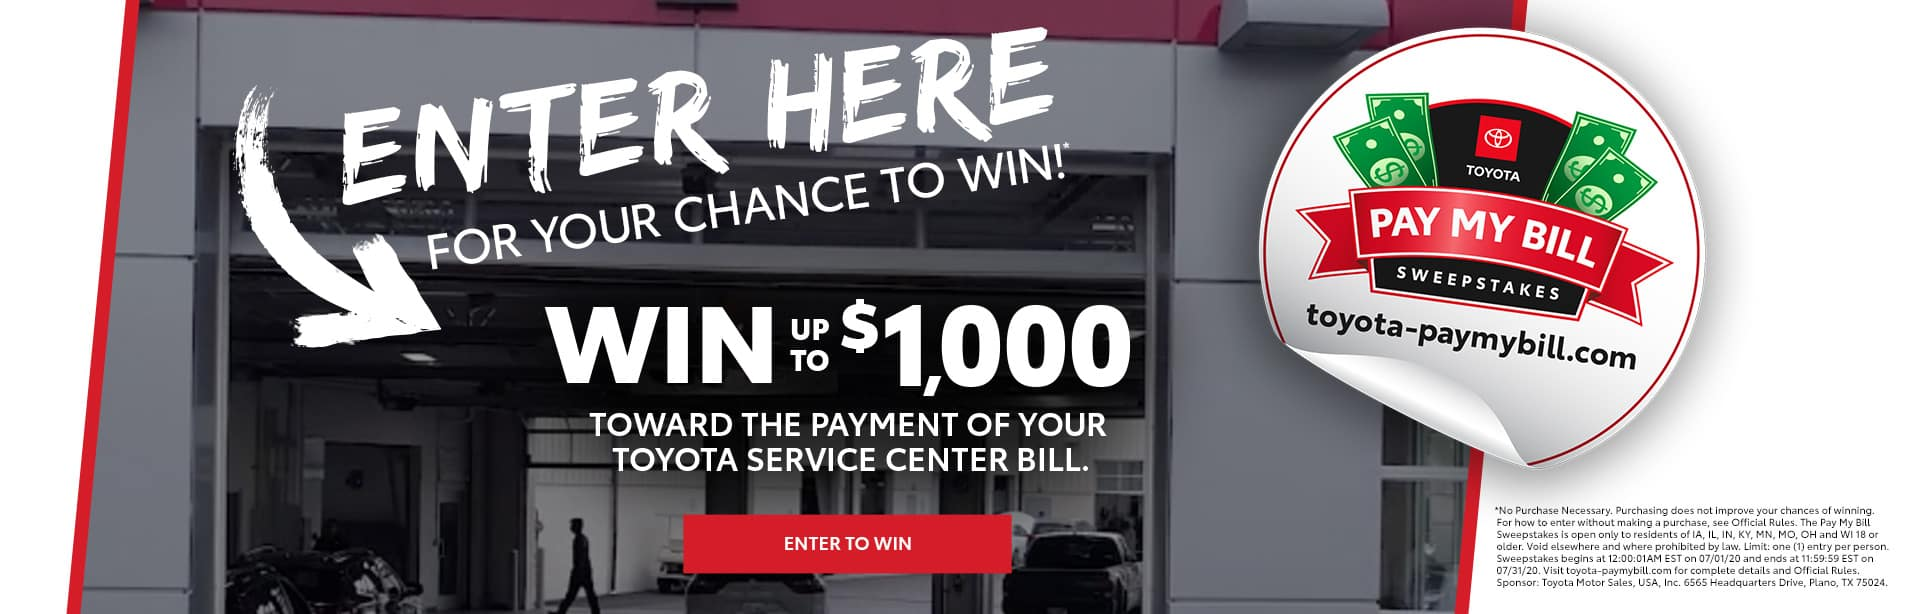 Midtown Toyota Pay My Bill Sweepstakes